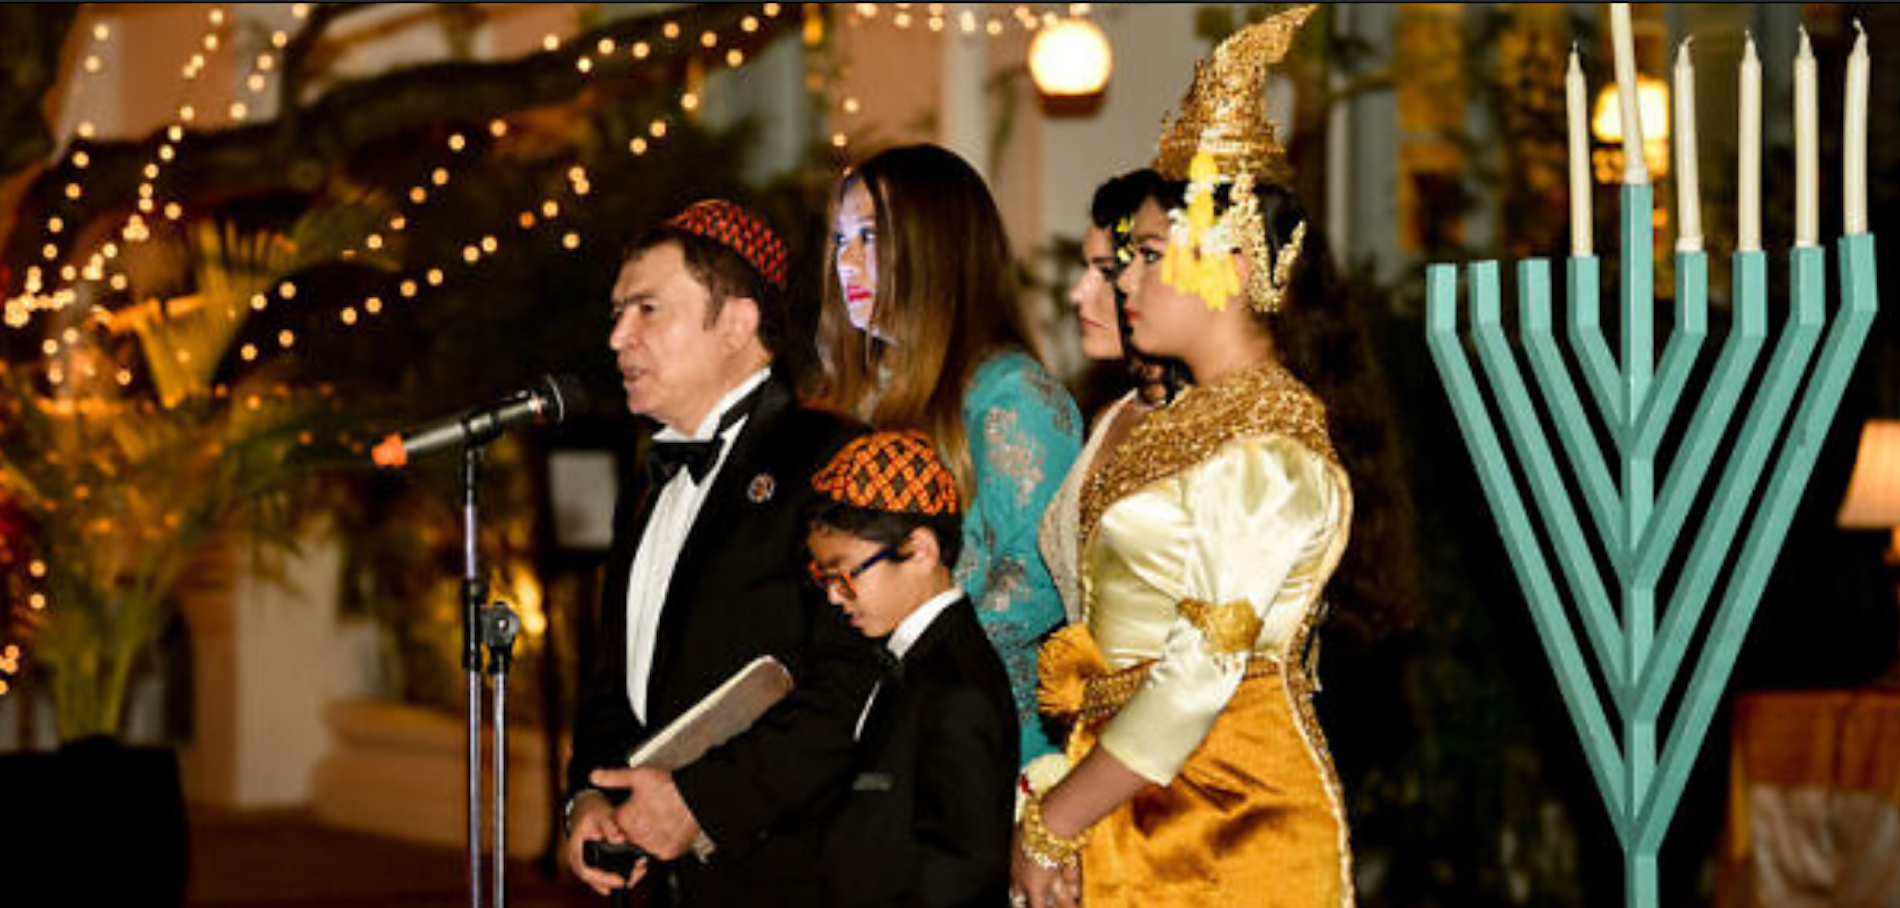 The Bas Mitzvah of Cambodian Royalty & Other Orthodox Jews in the News